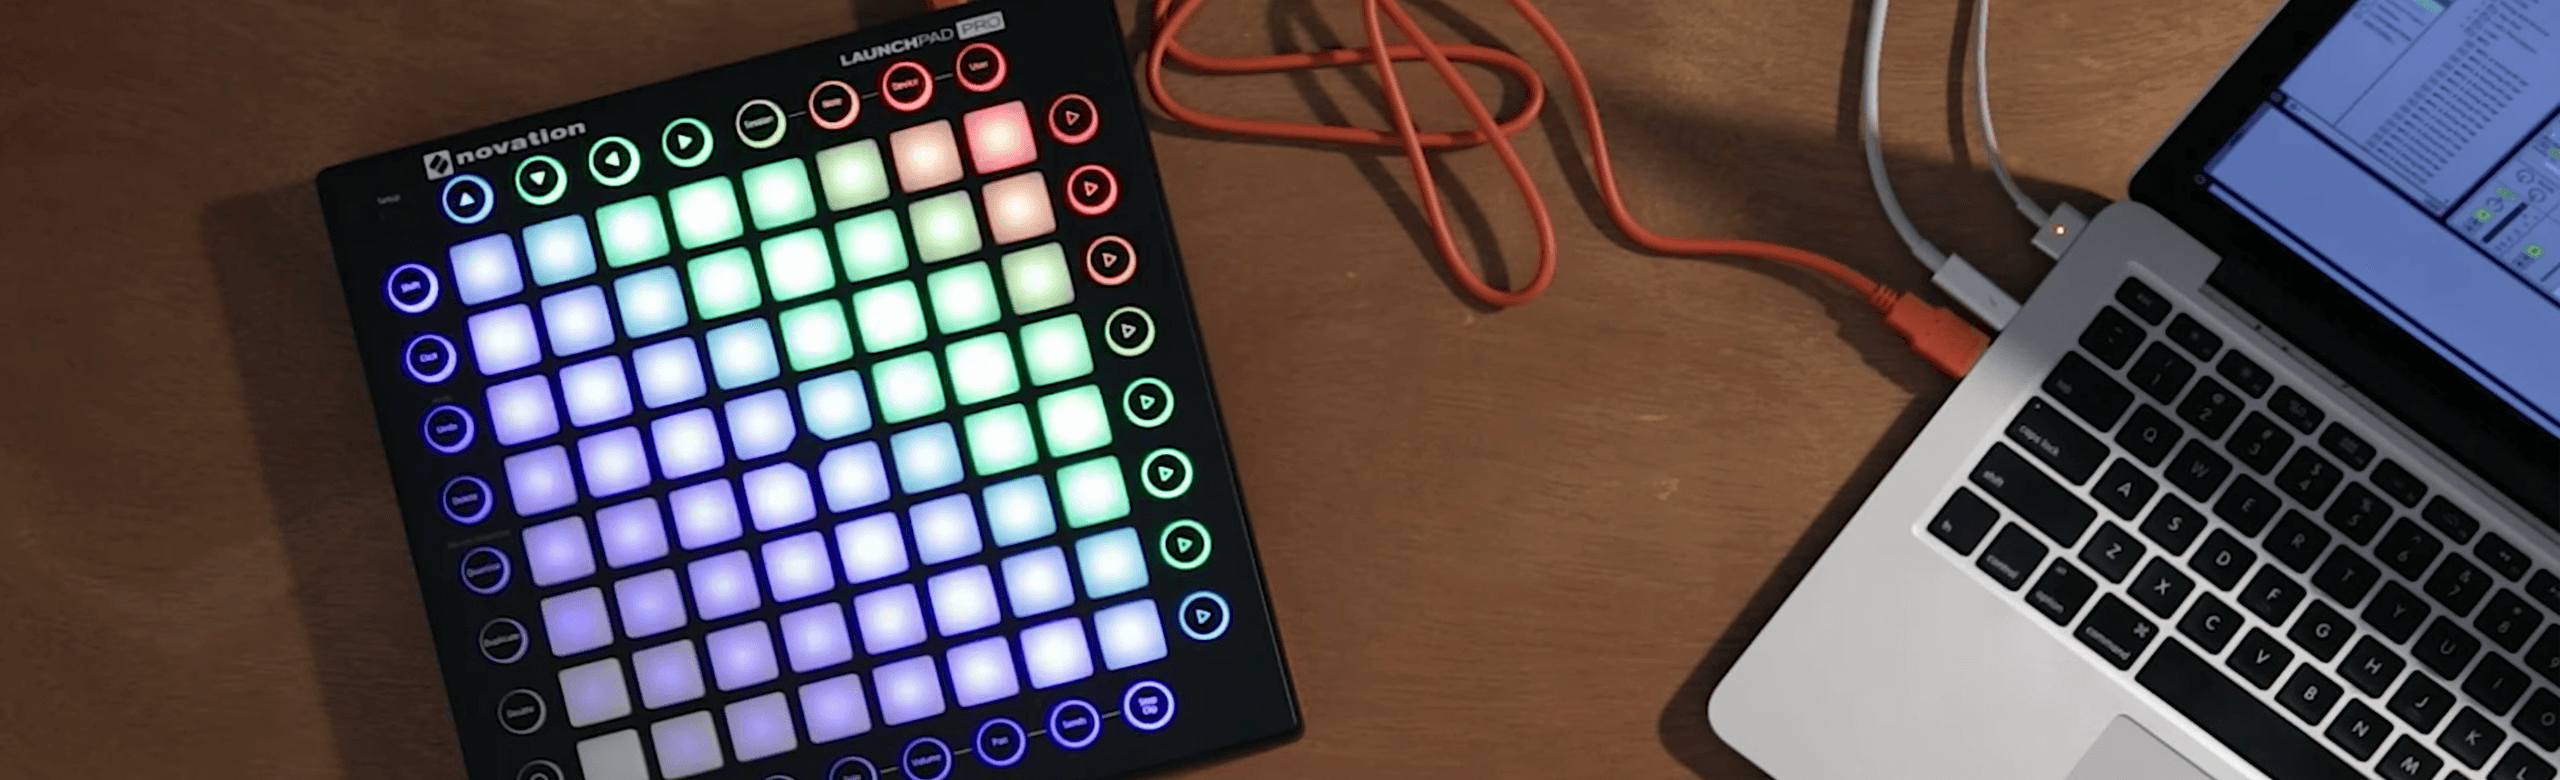 Launchpad With Ableton Live: Super Simple Setup